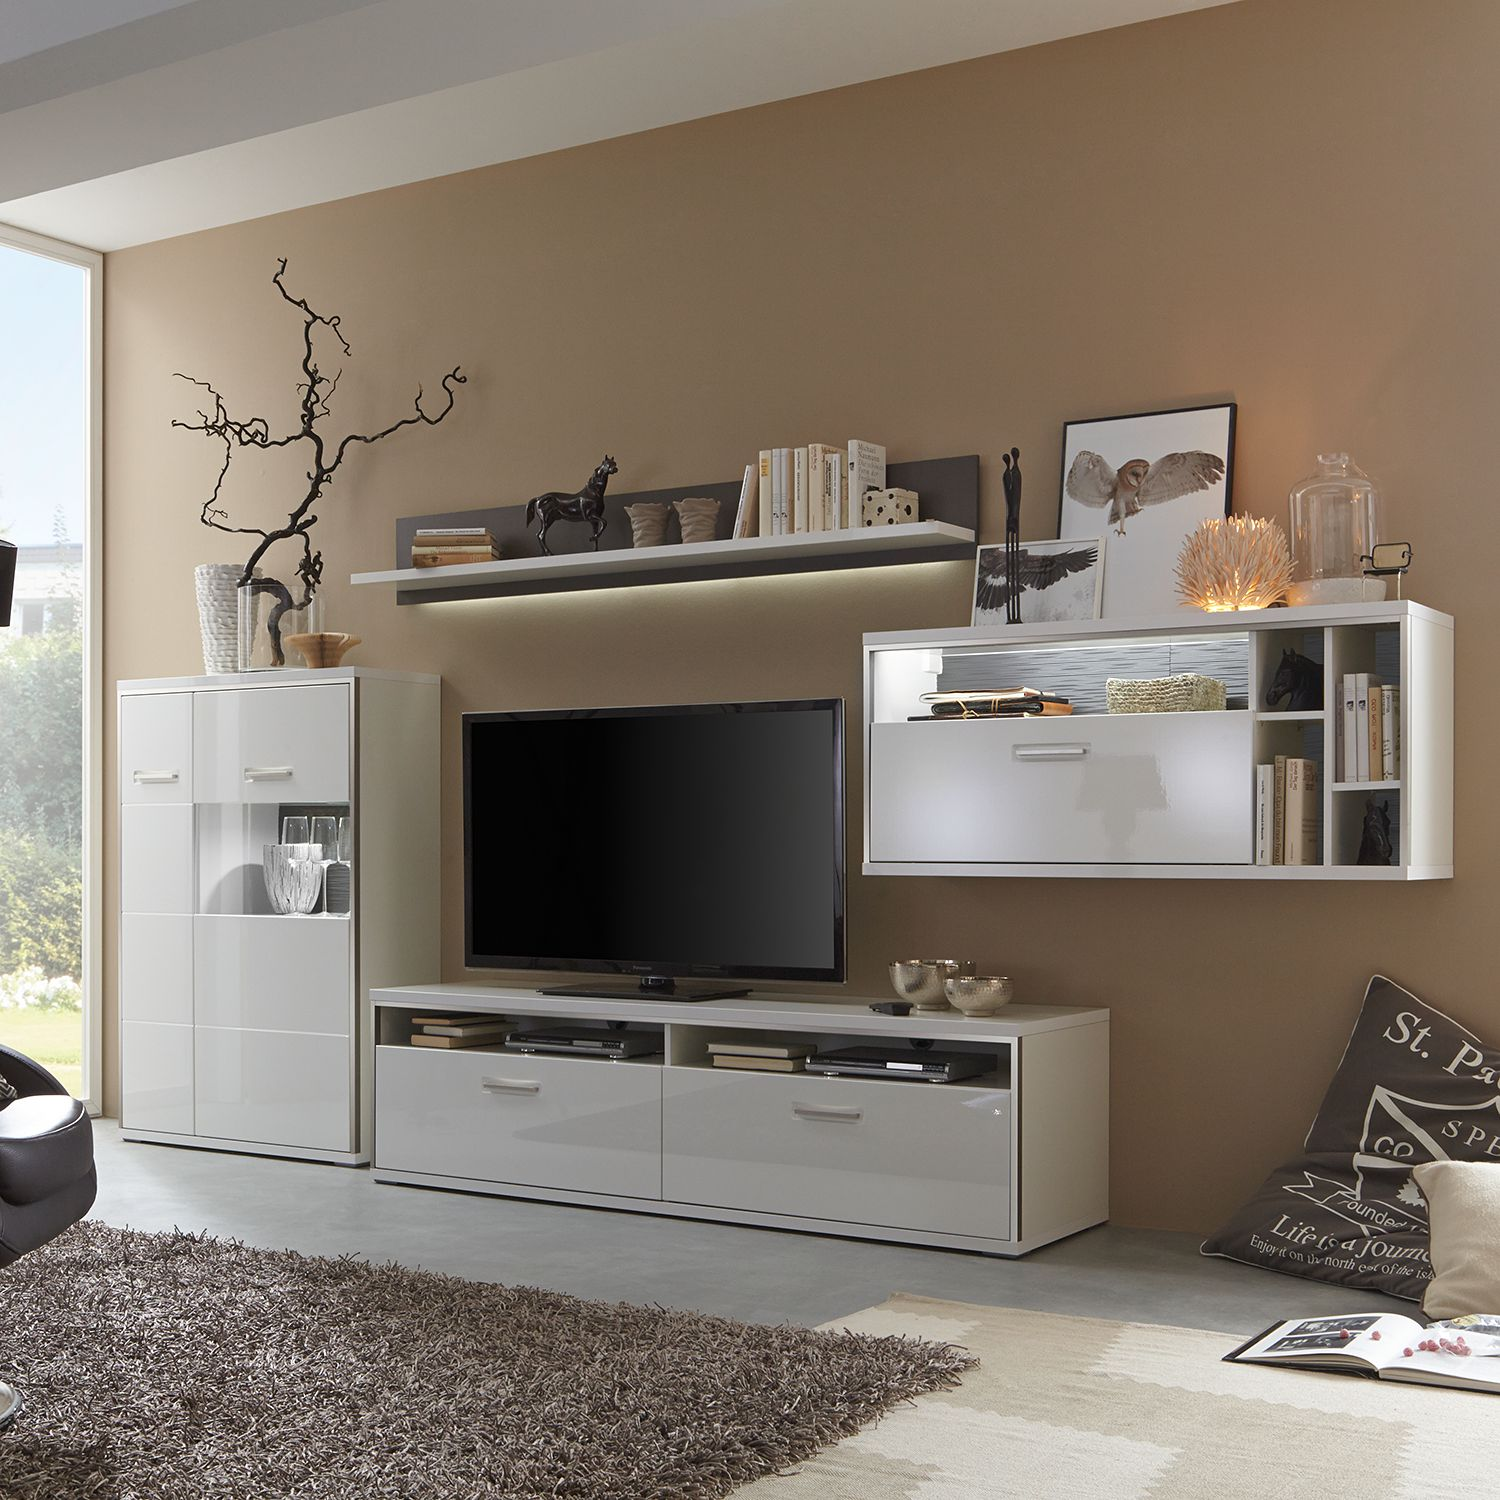 roller wohnwand grau interessante ideen f r. Black Bedroom Furniture Sets. Home Design Ideas